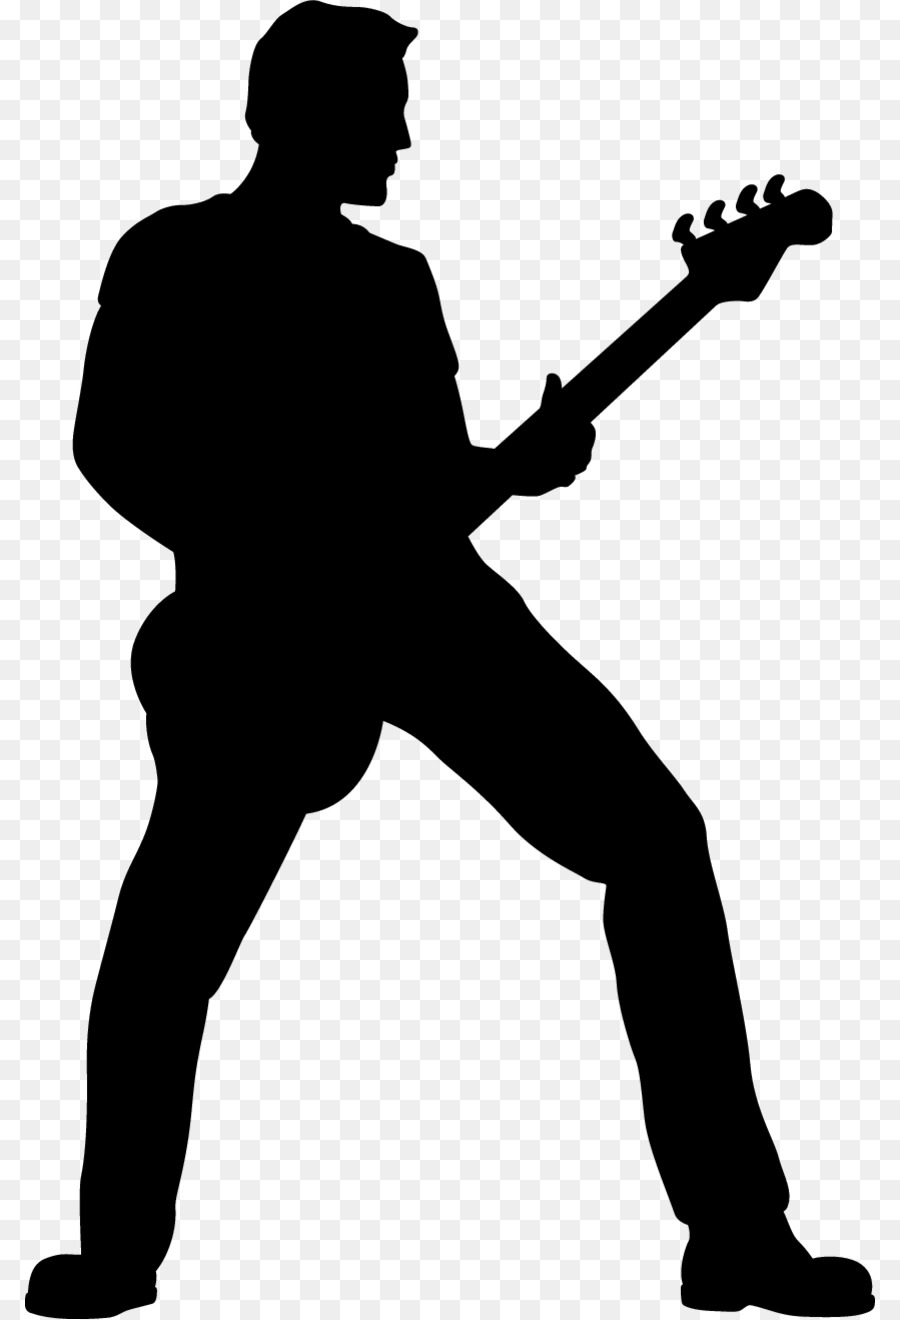 guitarist silhouette clip art band png download 850 1319 free rh kisspng com rock band clipart free rock band clipart free